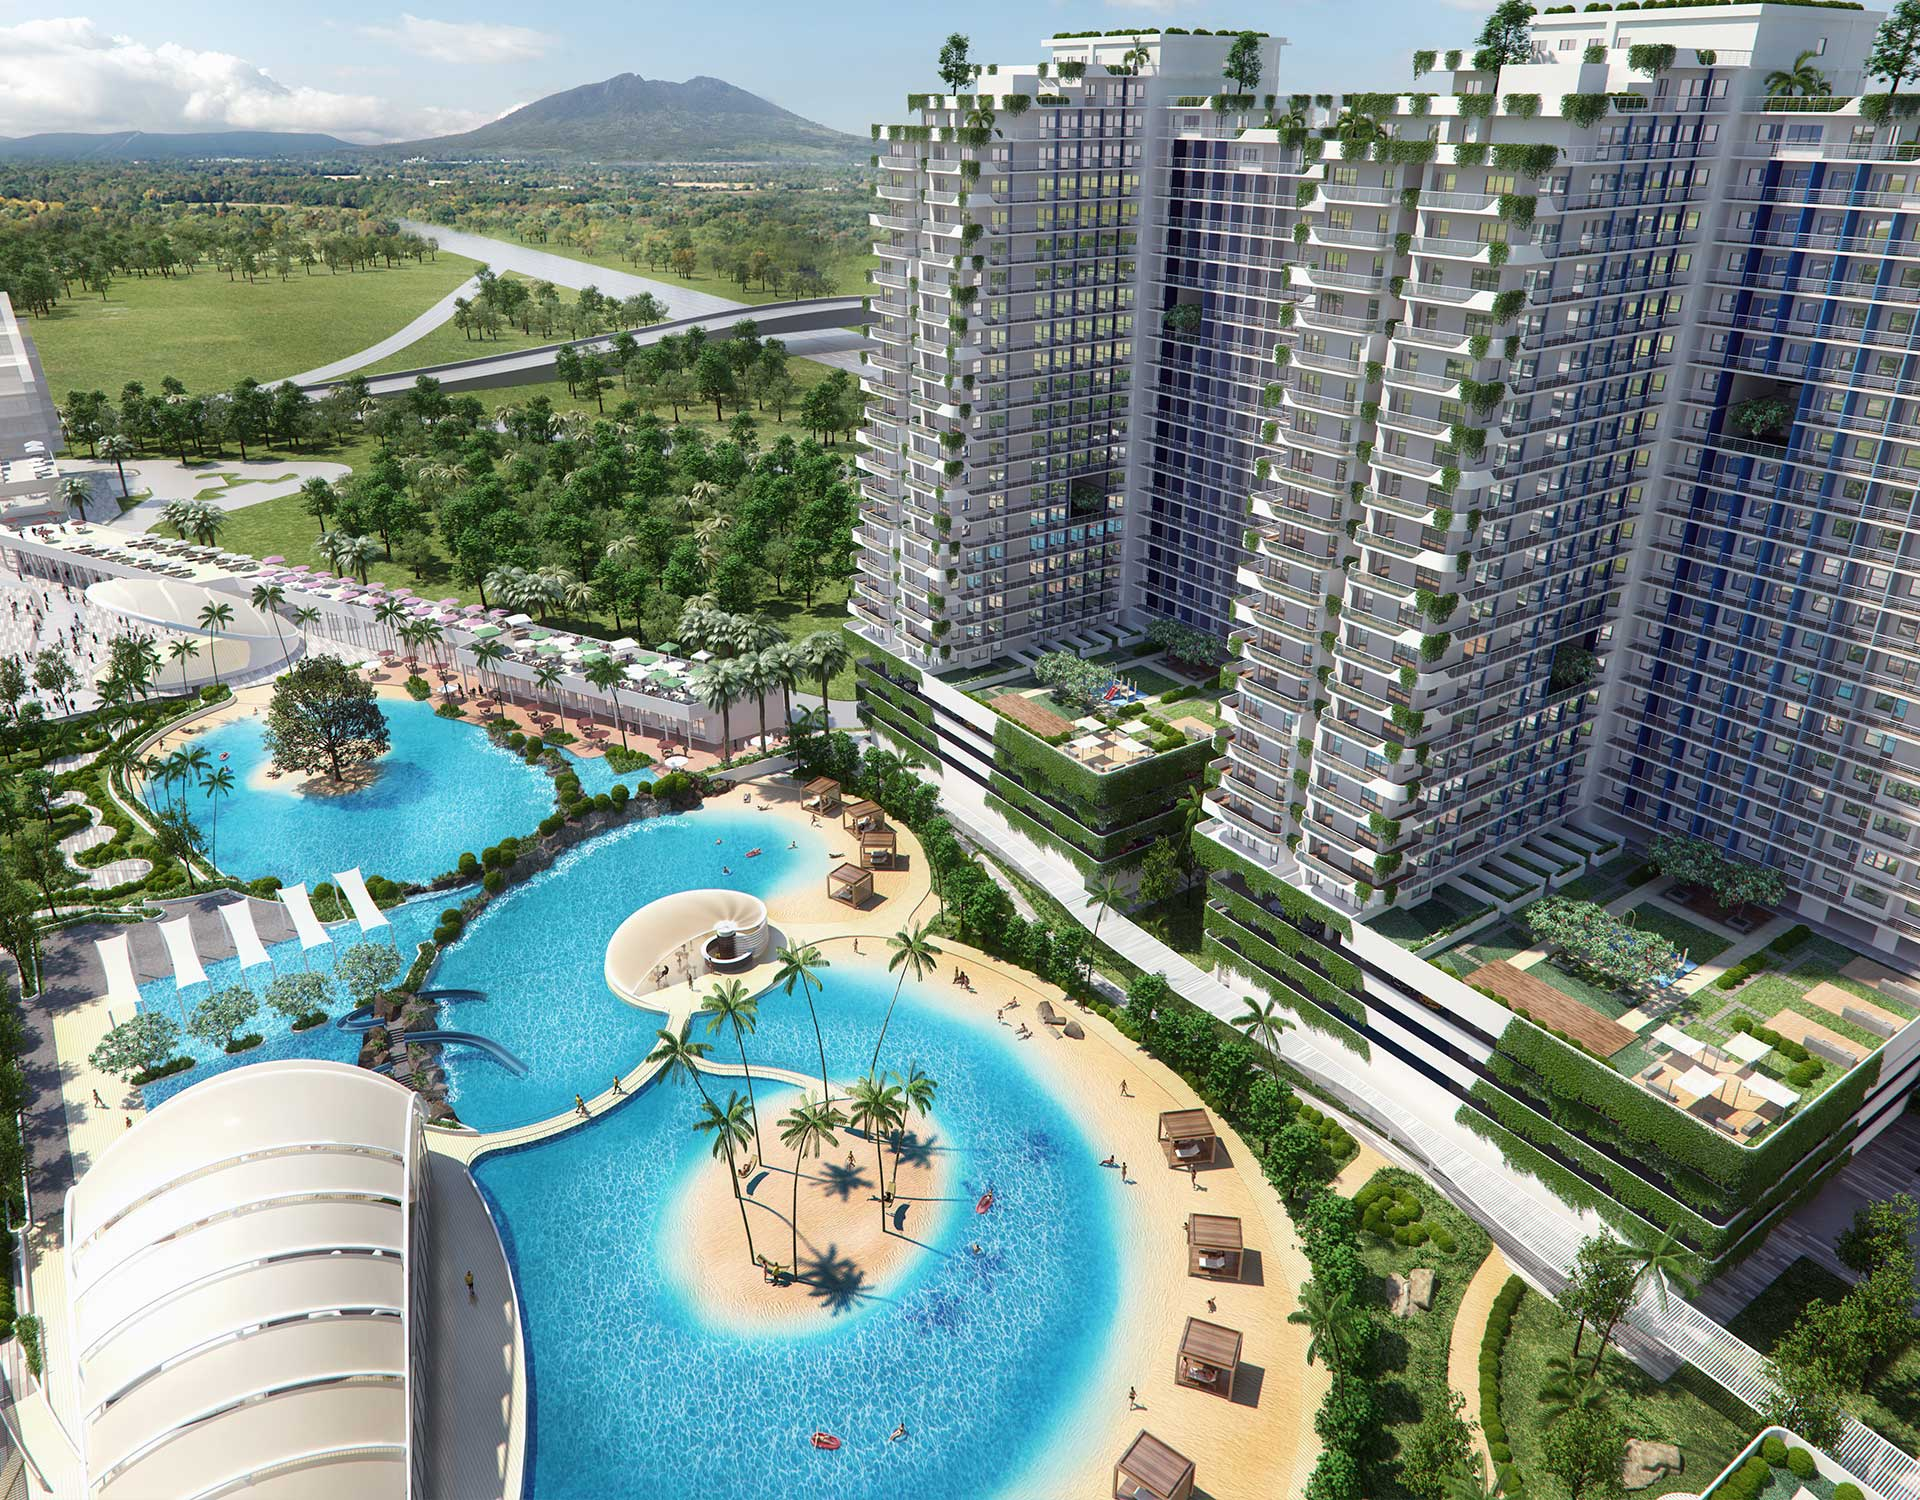 Property for Sale at Azure Urban Residences